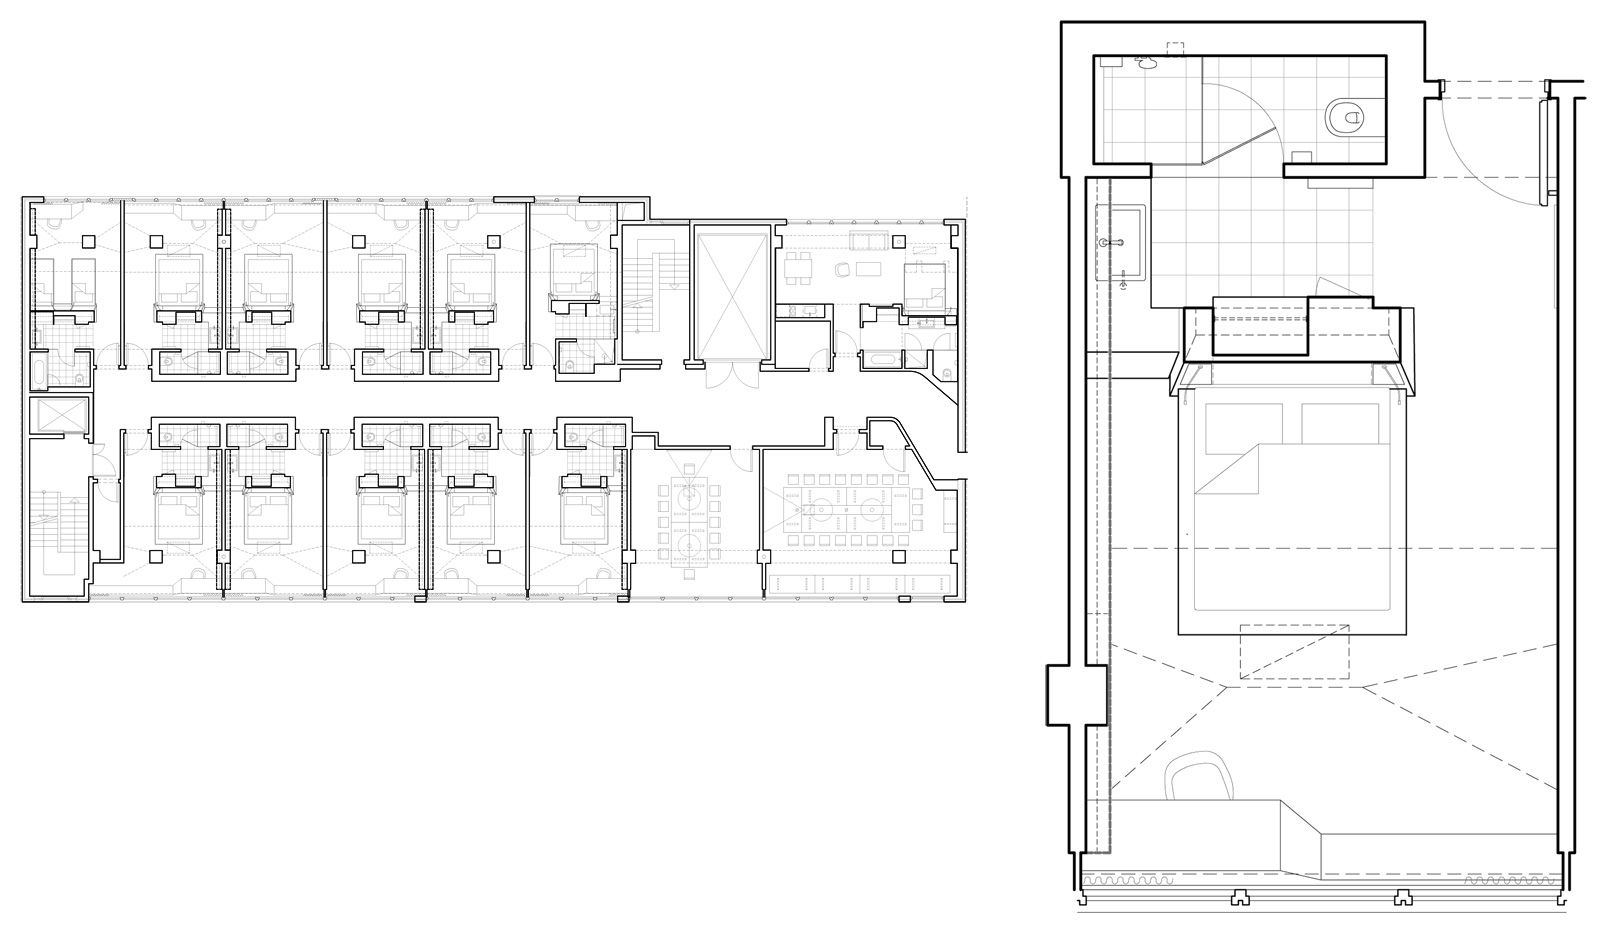 Hotel room layout dimensions images for Room design layout